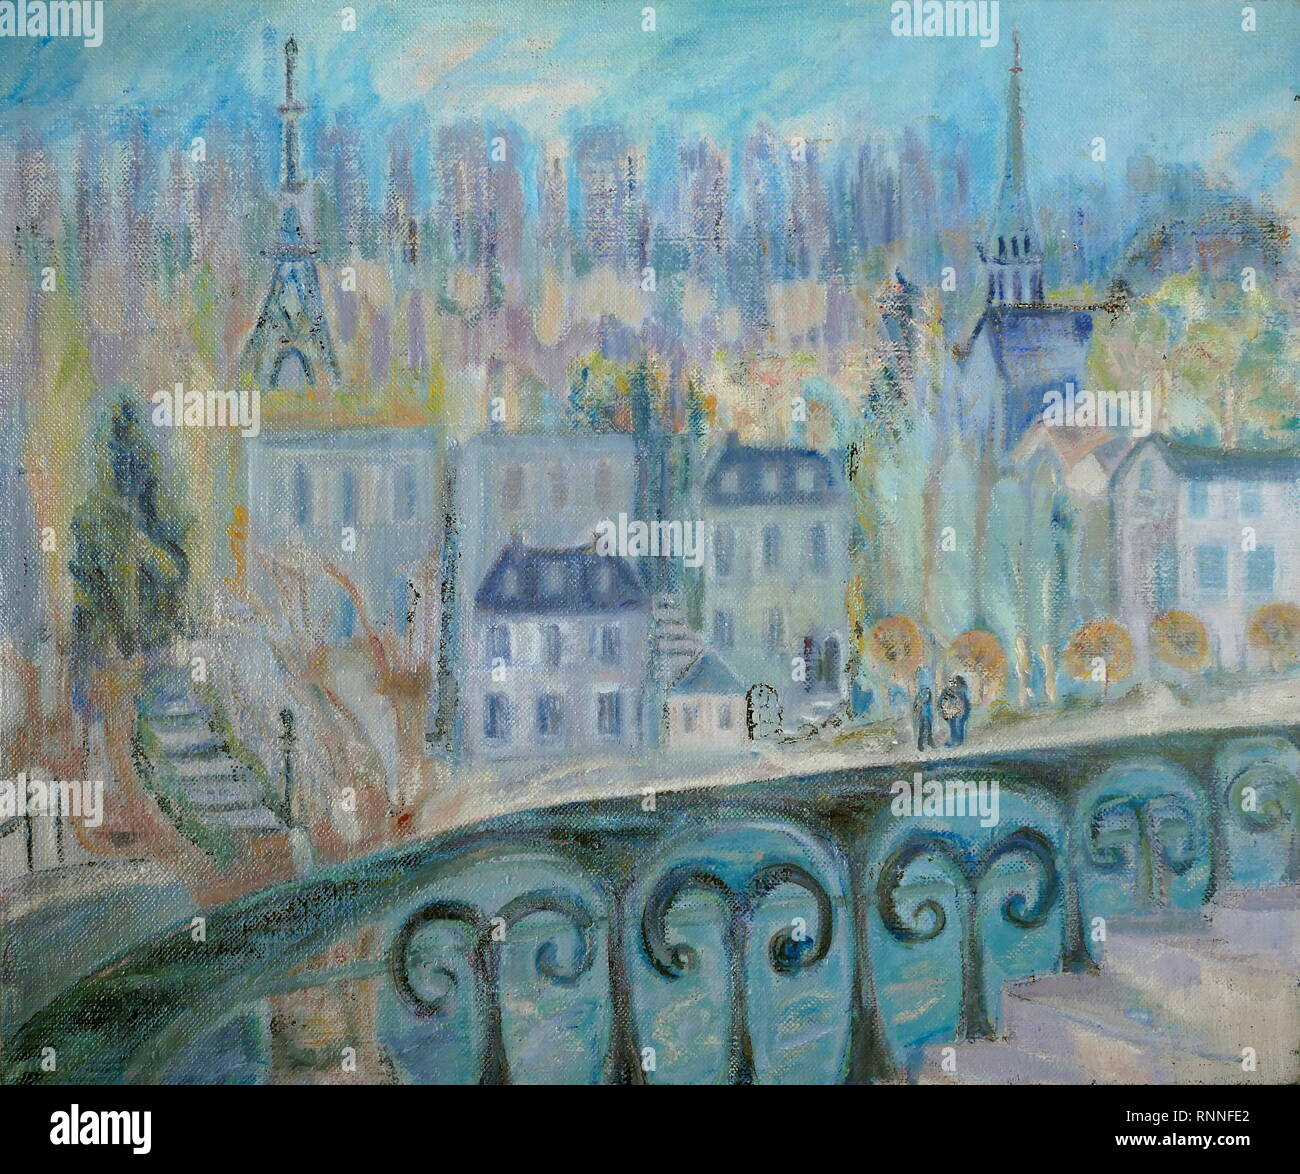 AJAXNETPHOTO. 2019. ENGLAND. - T.G. EASTLAND ART - VIEW OF PARIS FROM SAINT-CLOUD, FRANCE, PAINTED BY T.G.EASTLAND; LARGE OIL ON HEAVY LINEN CANVAS. 20TH CENTURY IMPRESSIONIST STYLE WORK DATED ABOUT 1984. PAINTING UNSIGNED. PHOTO:© IN THIS DIGITAL COPY OF THE ORIGINAL WORK/AJAX NEWS & FEATURE SERVICE. SOURCE: PRIVATE COLLECTION. REF:GX191702_20011 - Stock Image